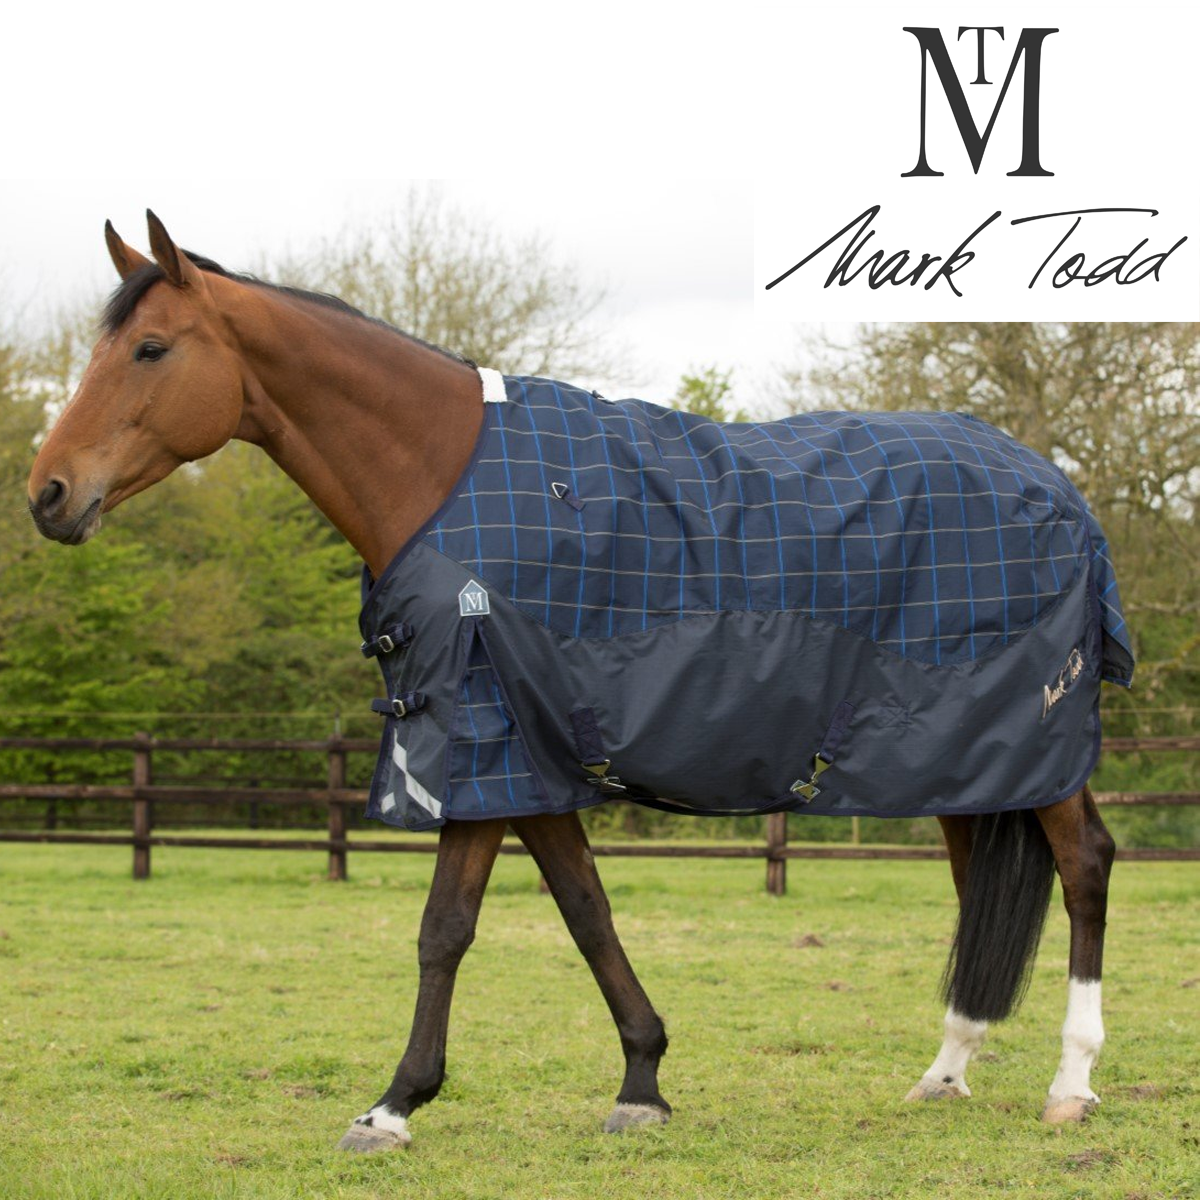 New Style Mark  Todd LIGHTWEIGHT  Mark PLAID TURNOUT RUG 0g 600d Navy 5'6'' - 7'0'' c9d03a